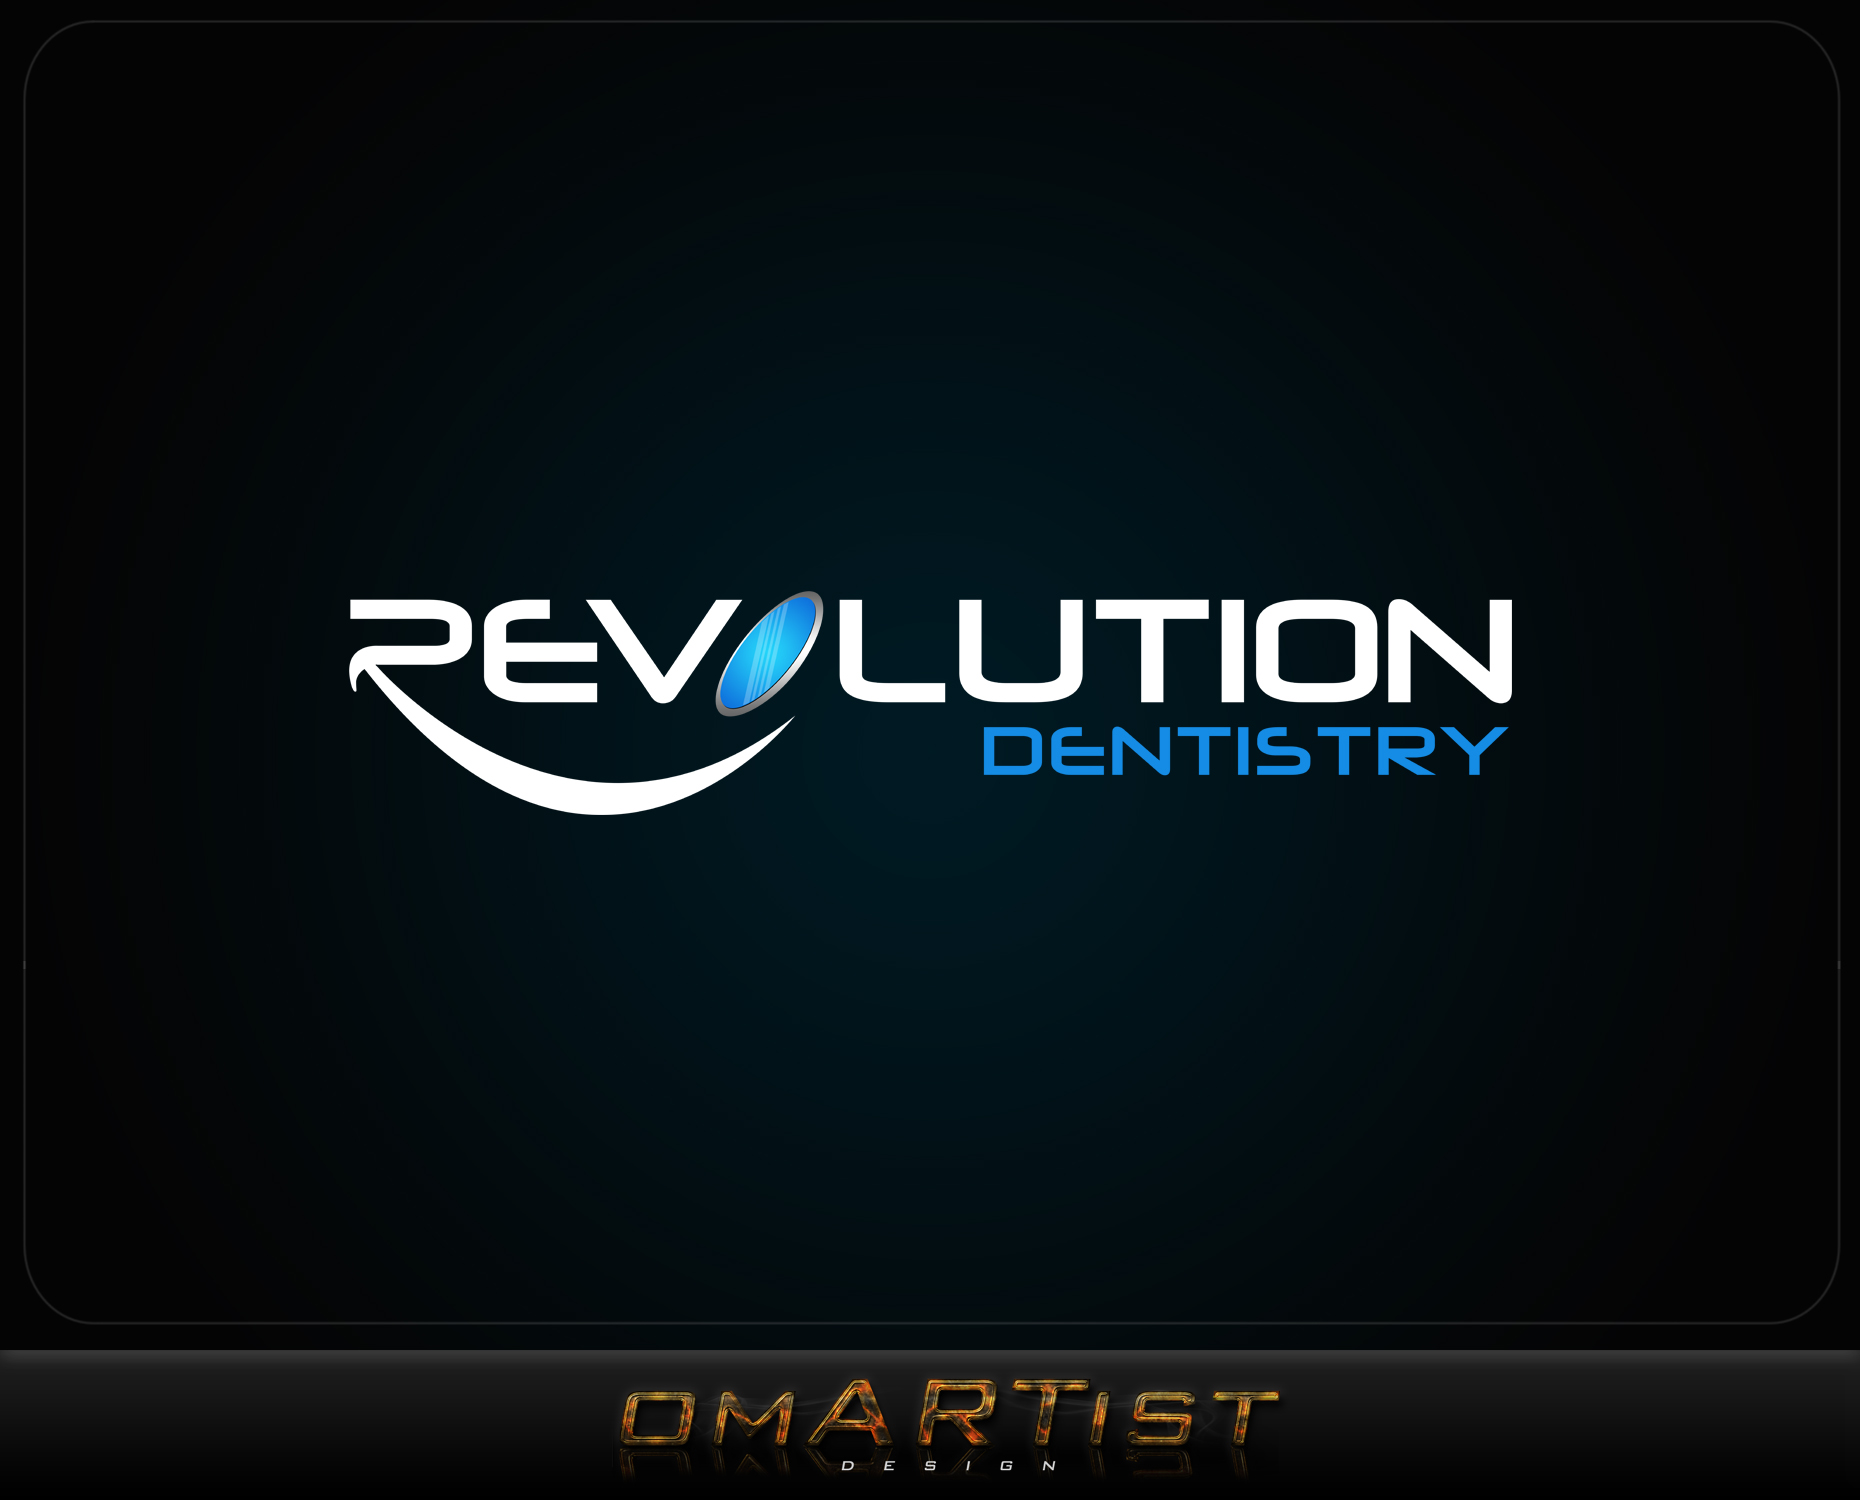 Logo Design by omARTist - Entry No. 238 in the Logo Design Contest Artistic Logo Design for Revolution Dentistry.